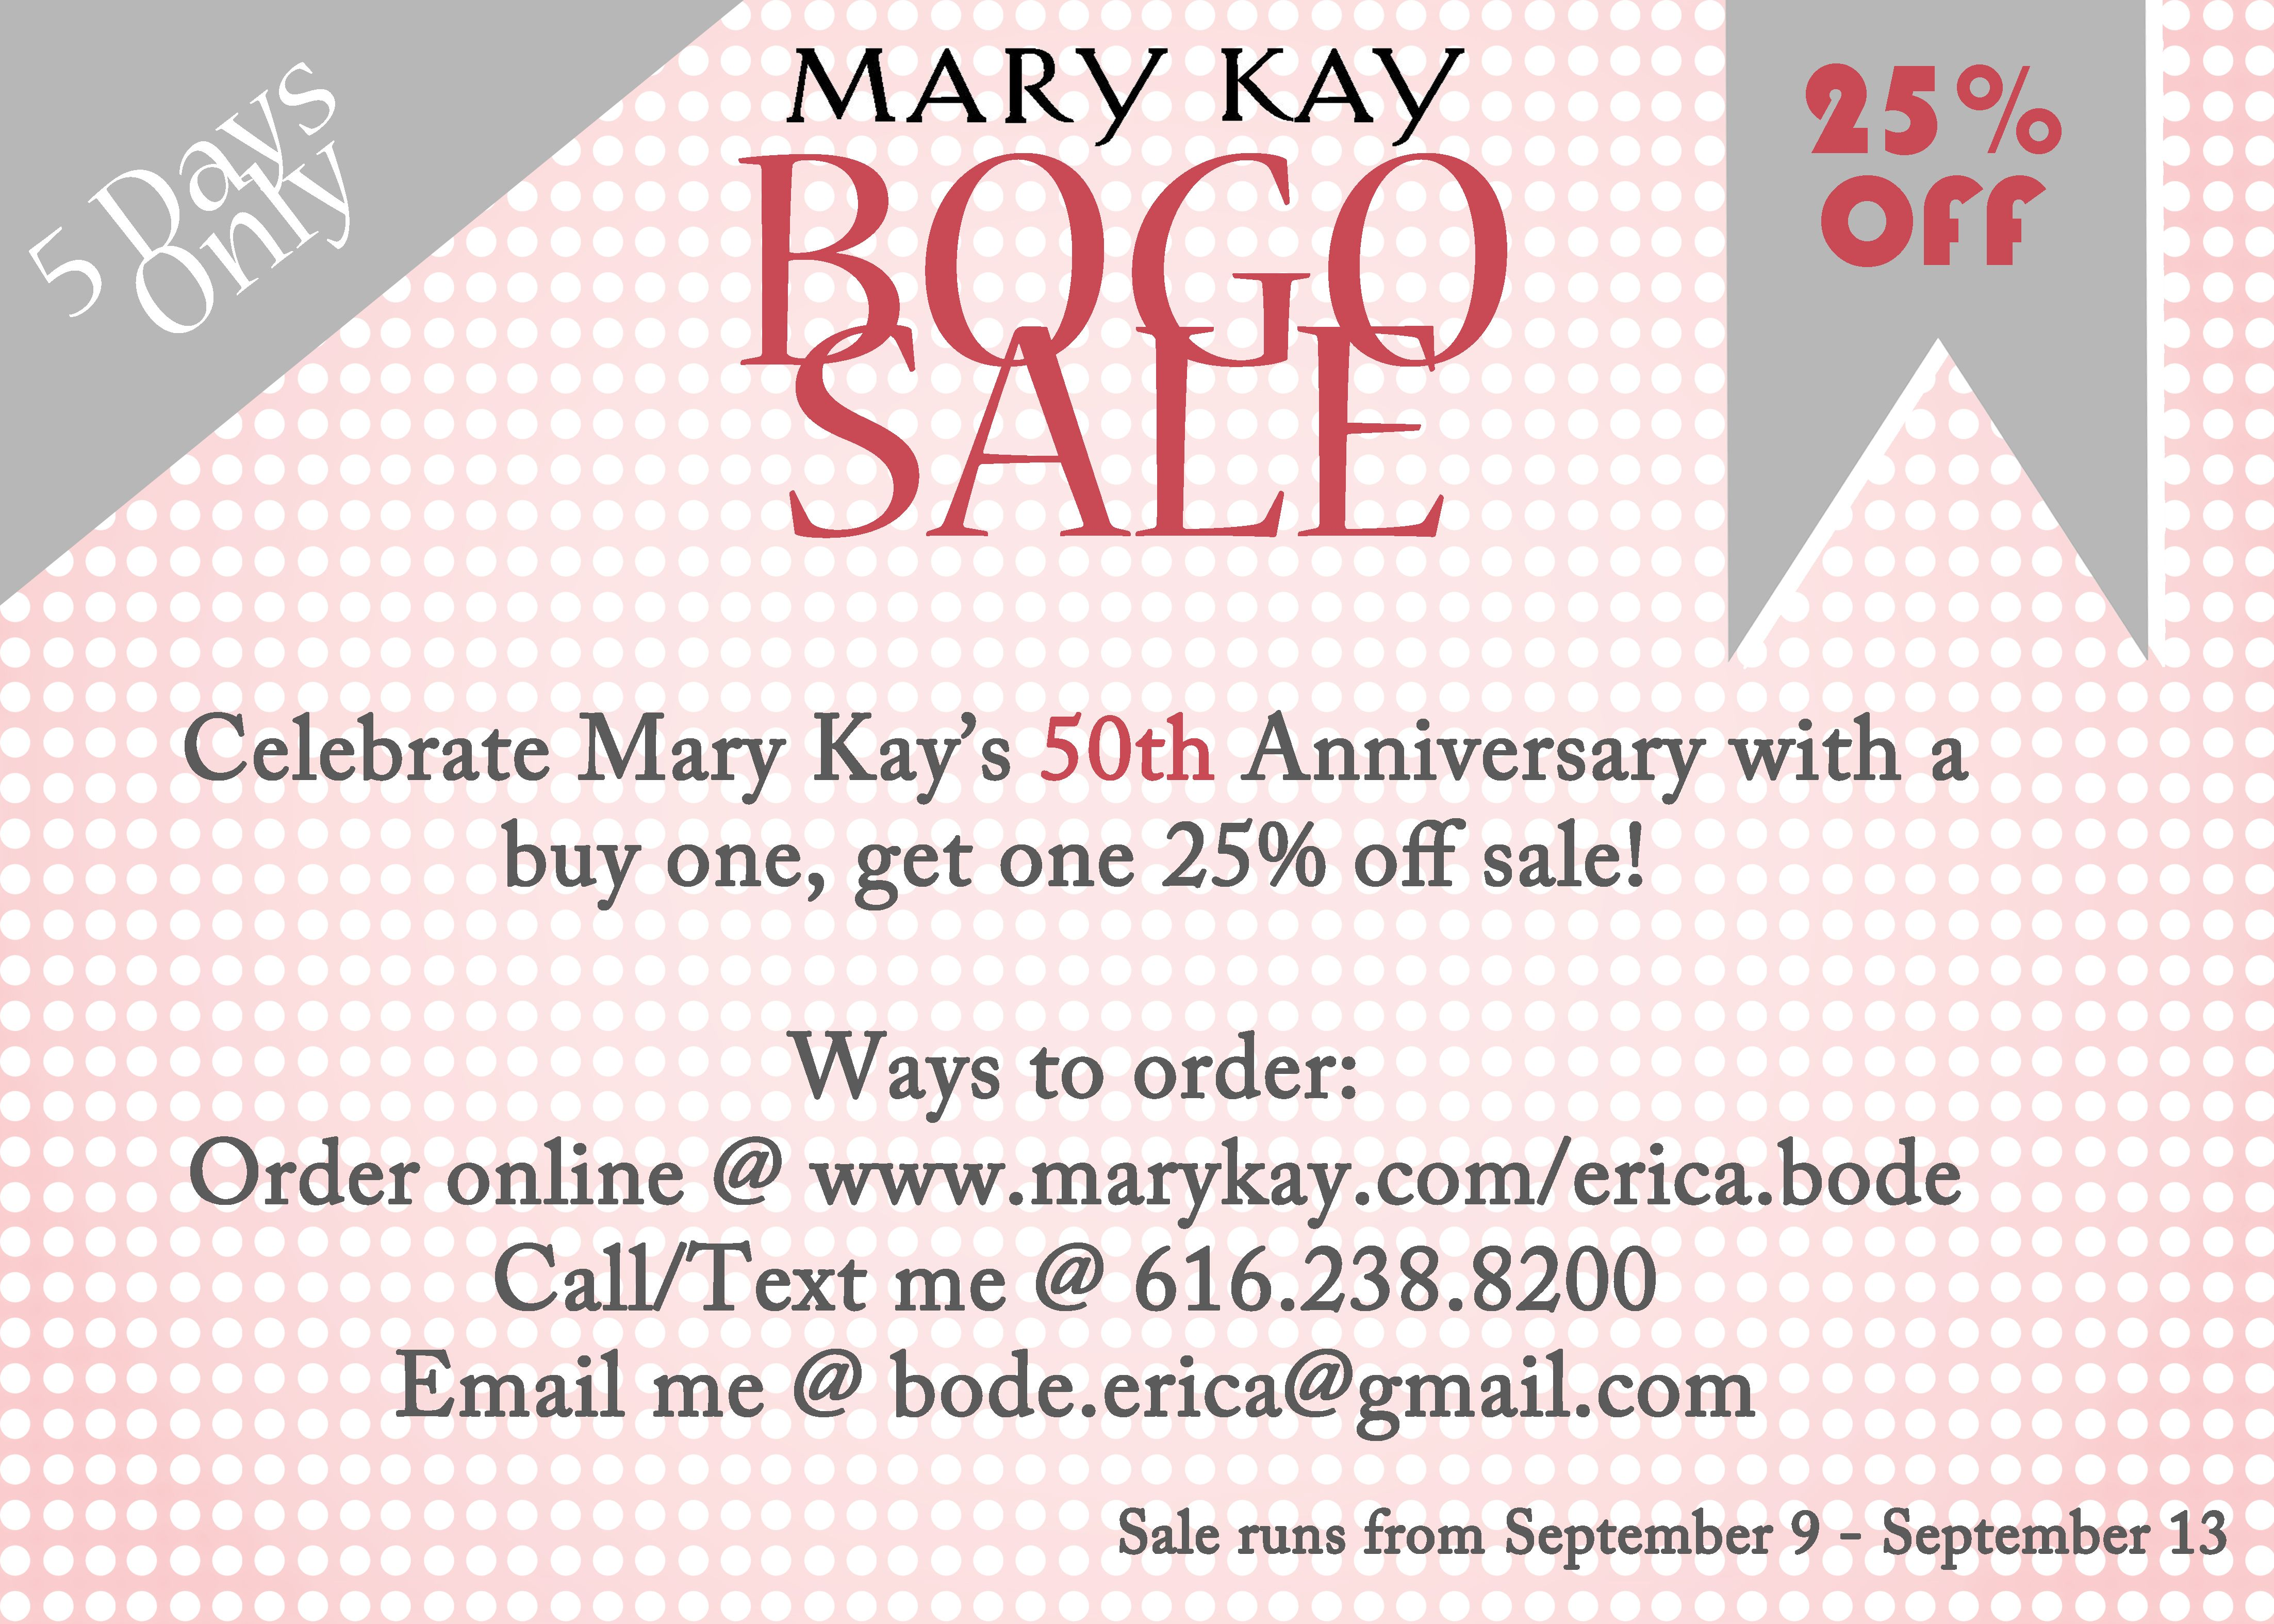 Mary kay online agreement on intouch - Mary Kay Bogo Sale Idea